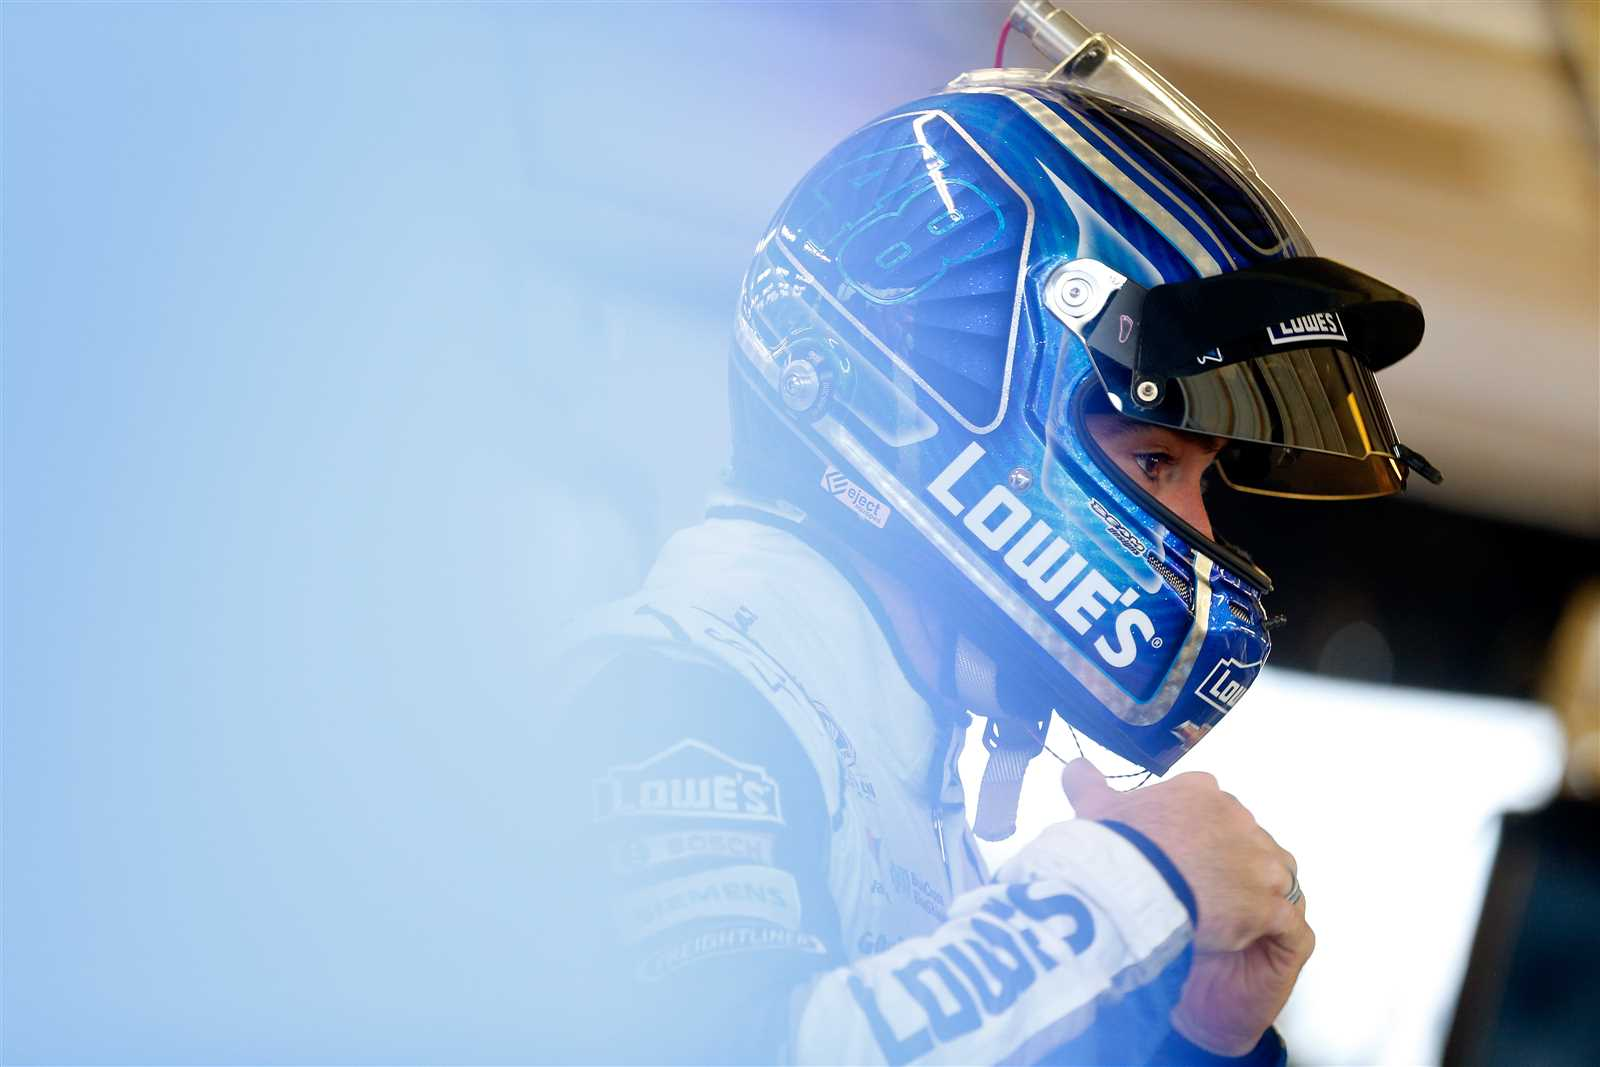 Jimmie Johnson gets ready to practice at Chicagoland Friday. (Getty Images)